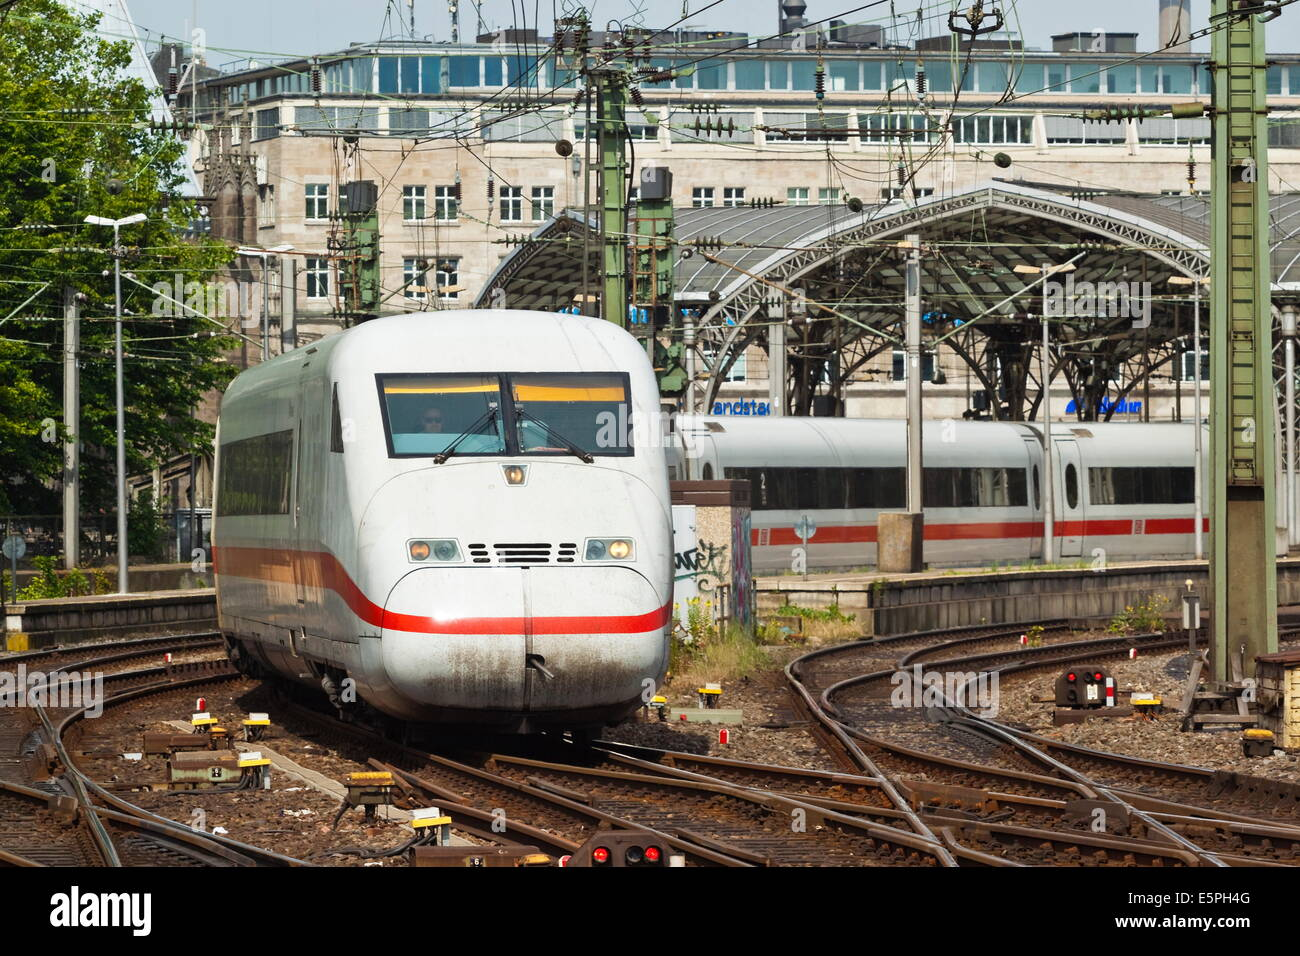 Intercity-Express ICE electric train leaving the central Hauptbanhof (railway station), Cologne, North Rhine-Westphalia, - Stock Image